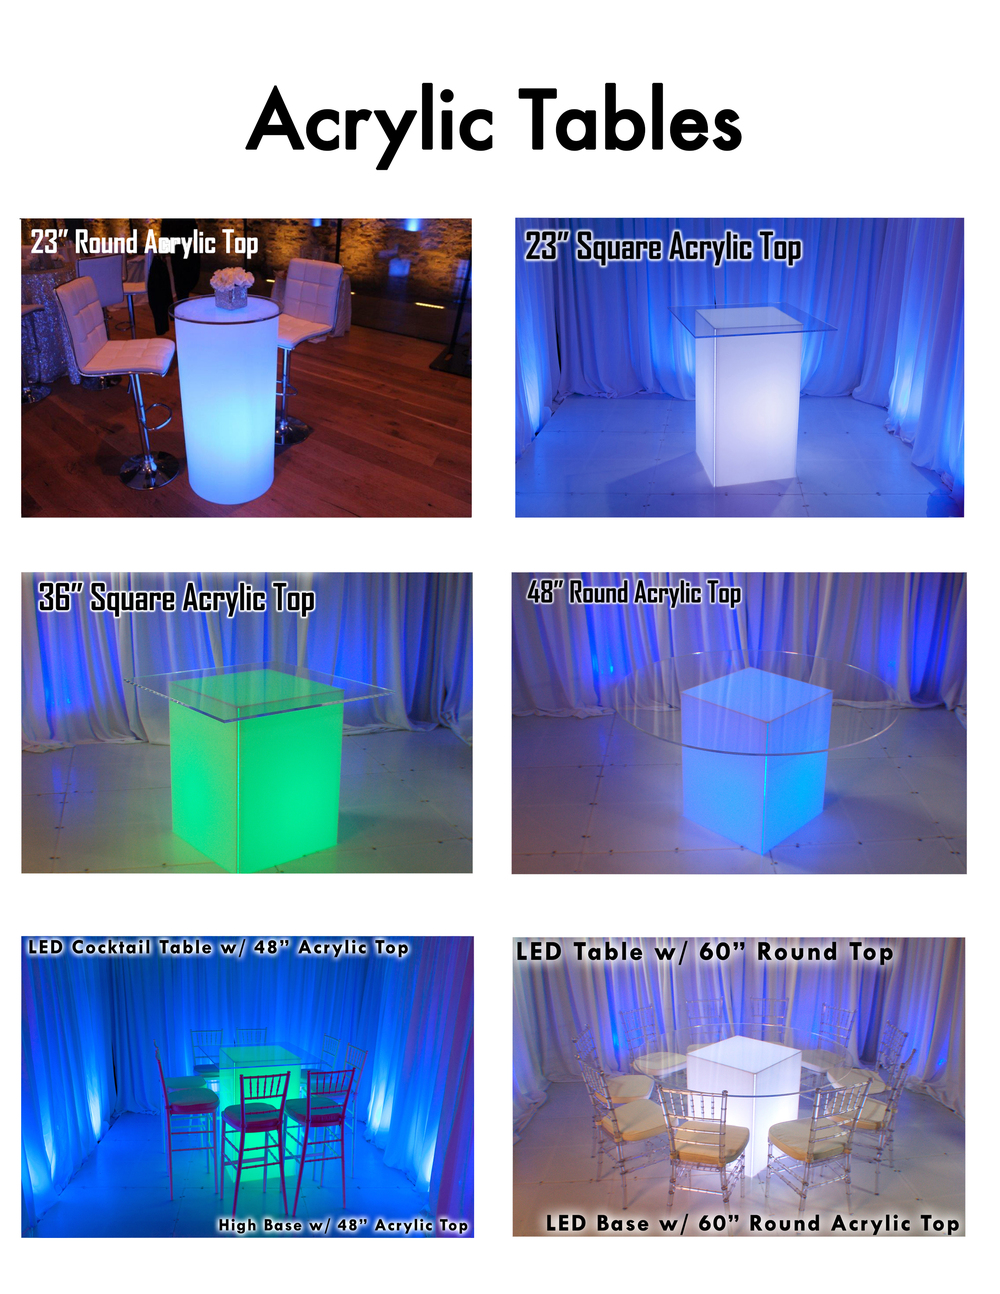 P24_Acrylic Tables.jpg